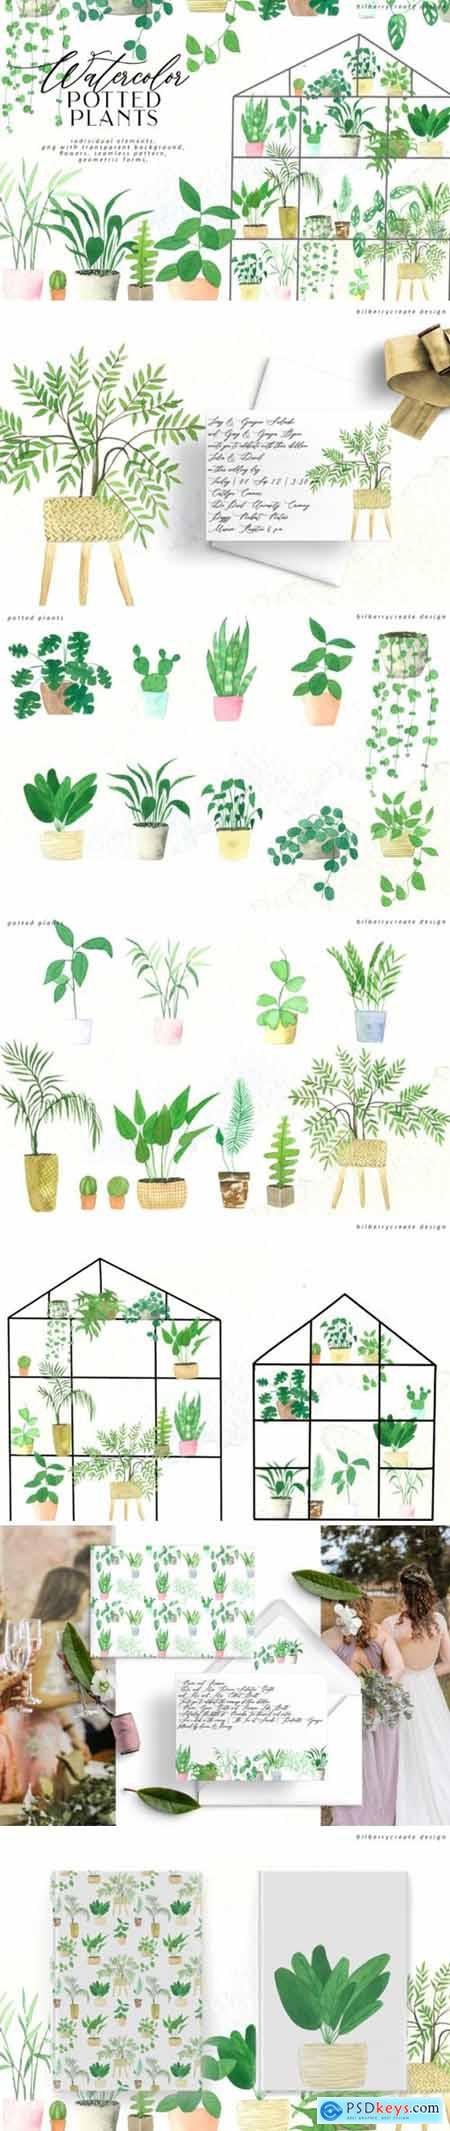 Watercolor Cozy Potted Plants 3623556